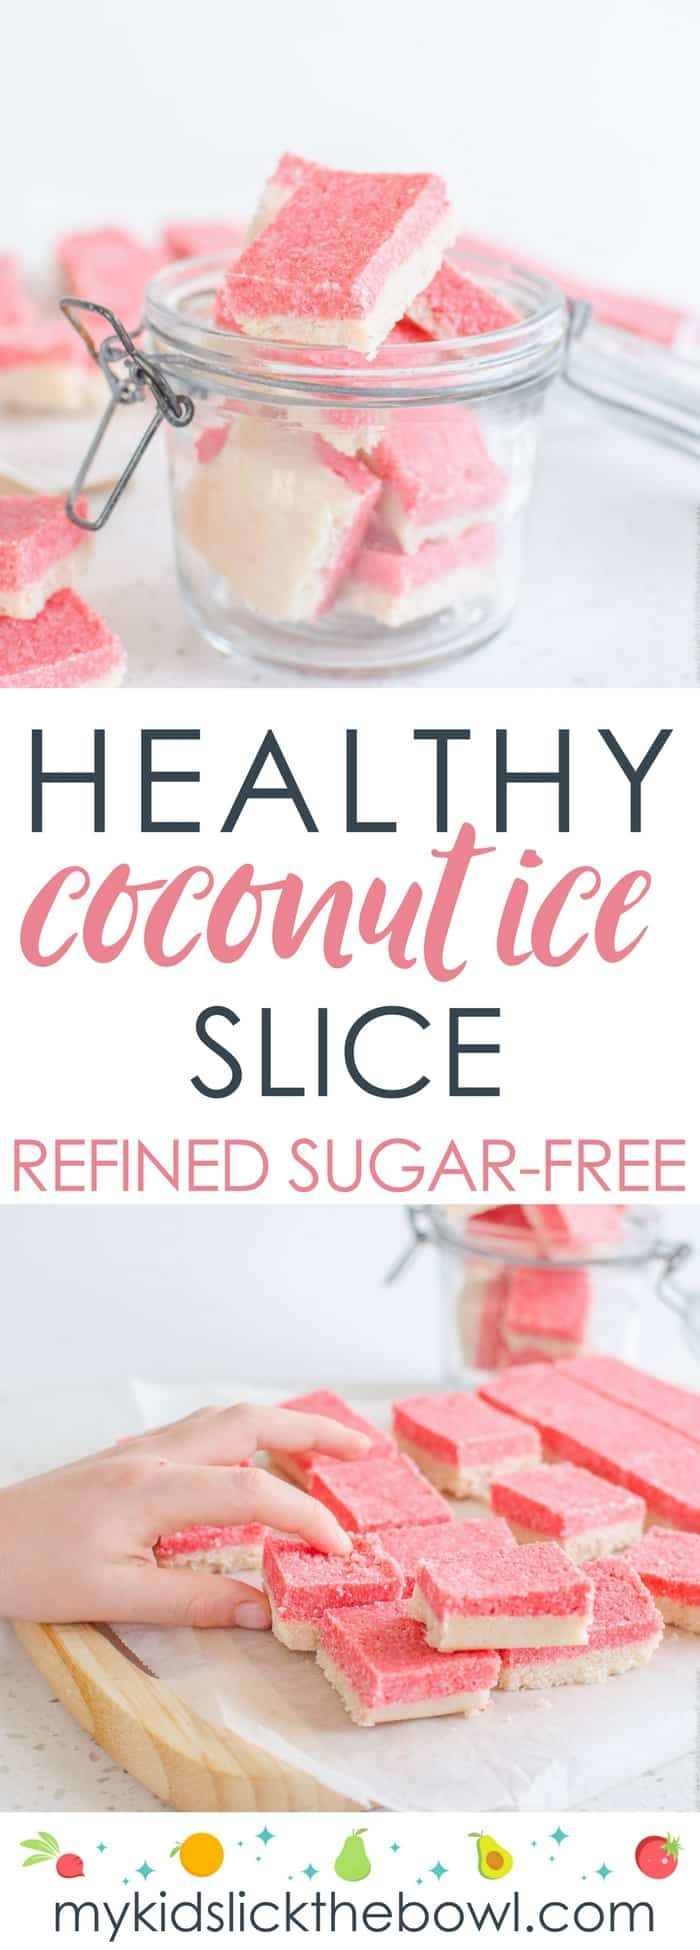 healthy coconut ice slice an easy recipe, low sugar, paleo, vegan #coconutice